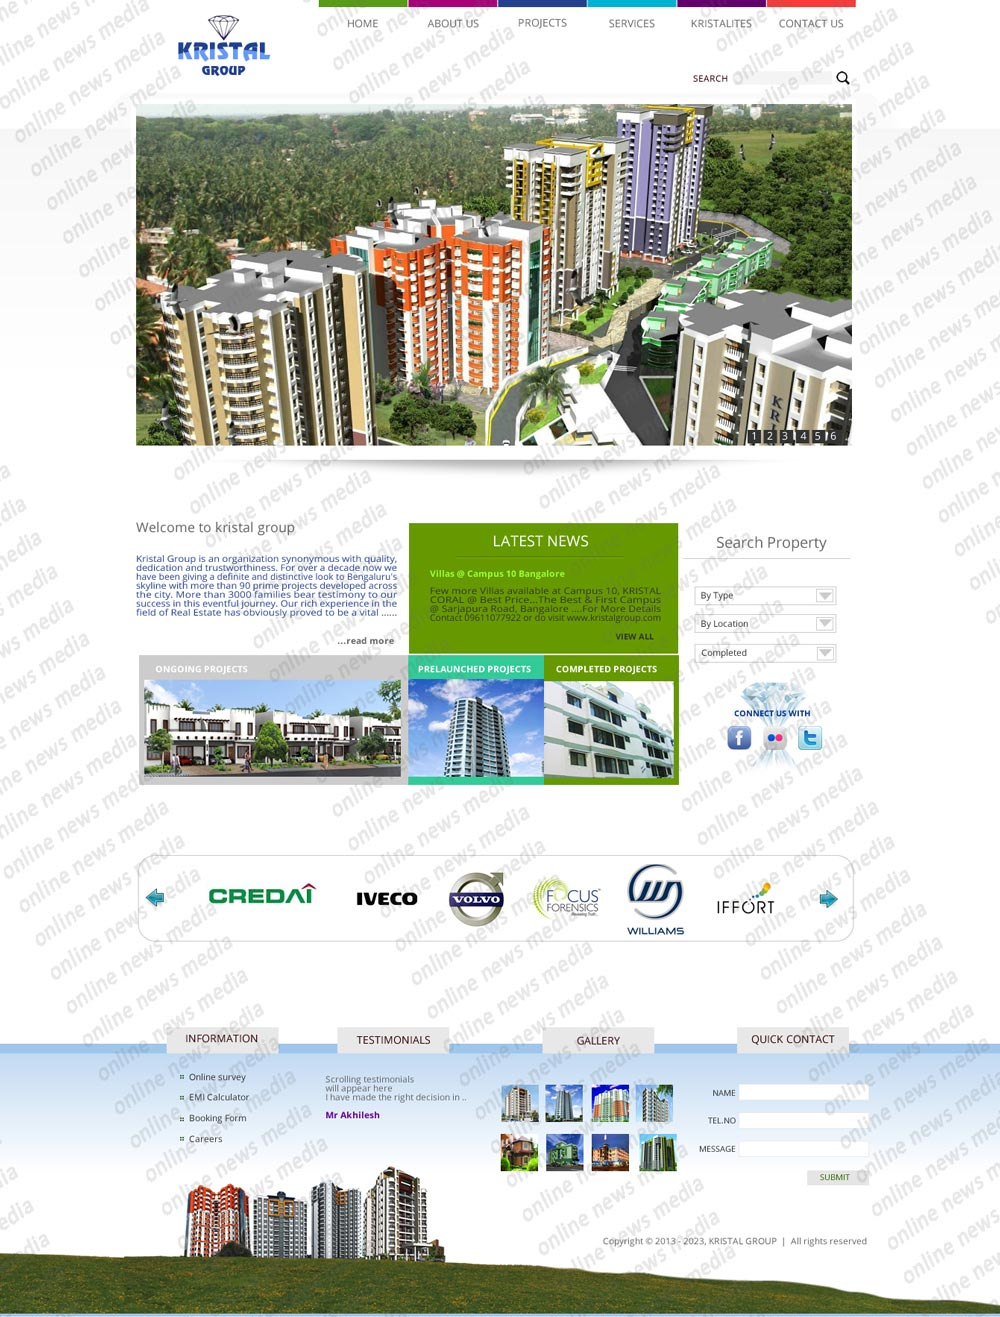 kristal group (1)